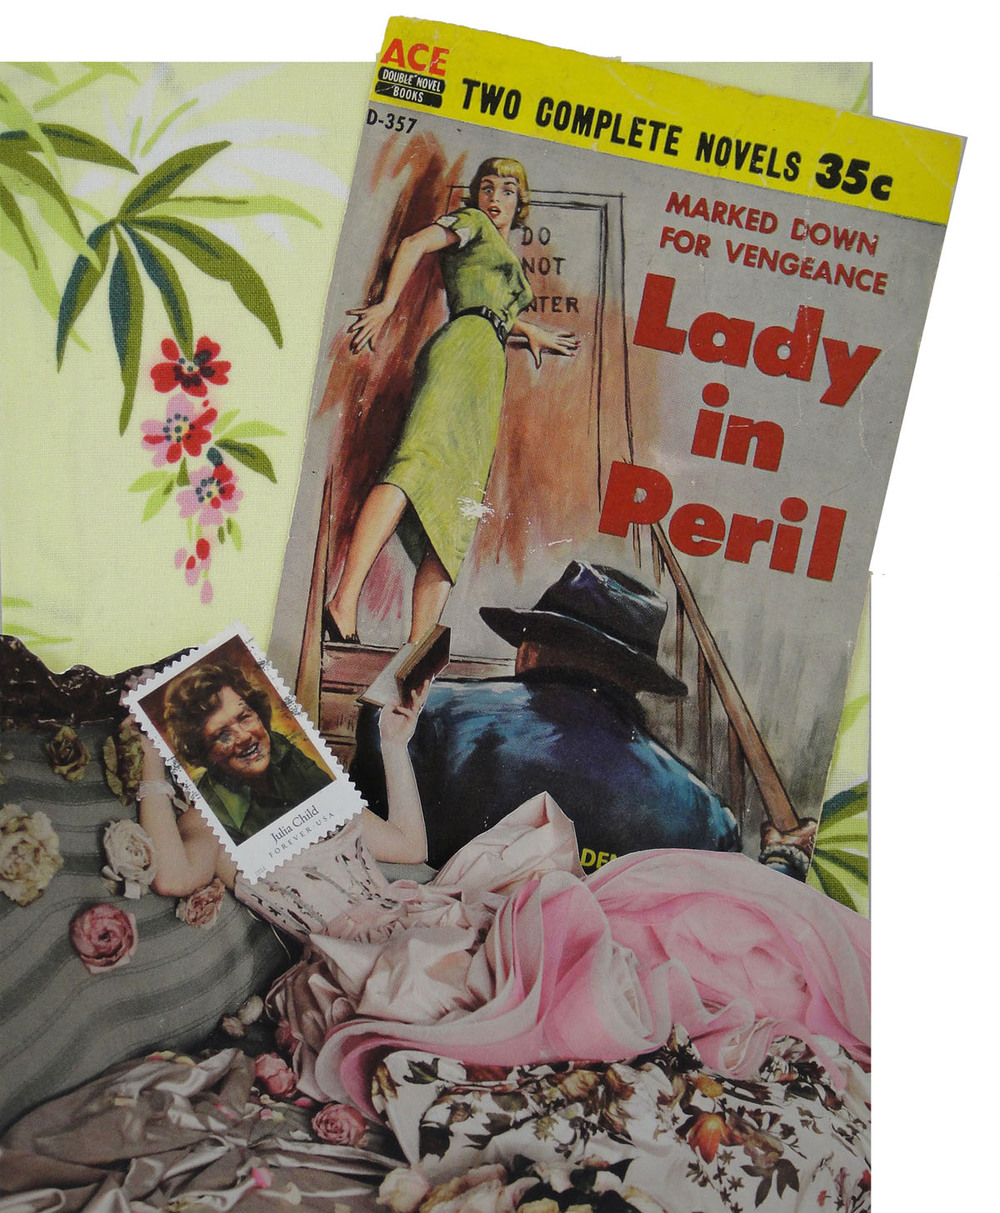 Collage made from postage stamps, magazine clippings, a paint strip and vintage hotel literature: Lady In Peril (2015)